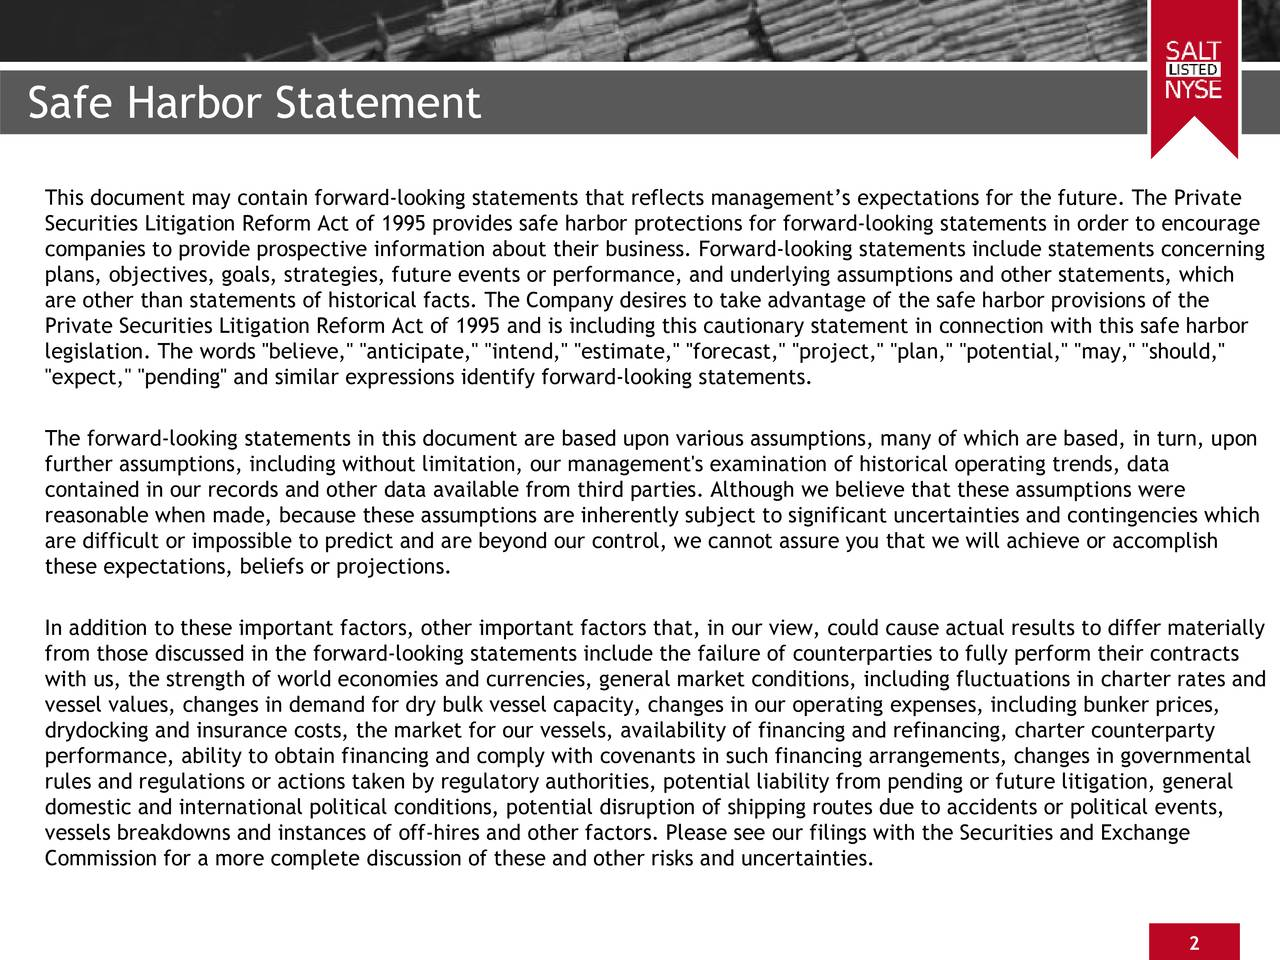 """This document may contain forward-looking statements that reflects managements expectations for the future. The Private Securities Litigation Reform Act of 1995 provides safe harbor protections for forward-looking statements in order to encourage companies to provide prospective information about their business. Forward-looking statements include statements concerning plans, objectives, goals, strategies, future events or performance, and underlying assumptions and other statements, which are other than statements of historical facts. The Company desires to take advantage of the safe harbor provisions of the Private Securities Litigation Reform Act of 1995 and is including this cautionary statement in connection with this safe harbor legislation. The words """"believe,"""" """"anticipate,"""" """"intend,"""" """"estimate,"""" """"forecast,"""" """"project,"""" """"plan,"""" """"potential,"""" """"may,"""" """"should,"""" """"expect,"""" """"pending"""" and similar expressions identify forward-looking statements. The forward-looking statements in this document are based upon various assumptions, many of which are based, in turn, upon further assumptions, including without limitation, our management's examination of historical operating trends, data contained in our records and other data available from third parties. Although we believe that these assumptions were reasonable when made, because these assumptions are inherently subject to significant uncertainties and contingencies which are difficult or impossible to predict and are beyond our control, we cannot assure you that we will achieve or accomplish these expectations, beliefs or projections. In addition to these important factors, other important factors that, in our view, could cause actual results to differ materially from those discussed in the forward-looking statements include the failure of counterparties to fully perform their contracts with us, the strength of world economies and currencies, general market conditions, including fluctuations in charter rates and vessel val"""